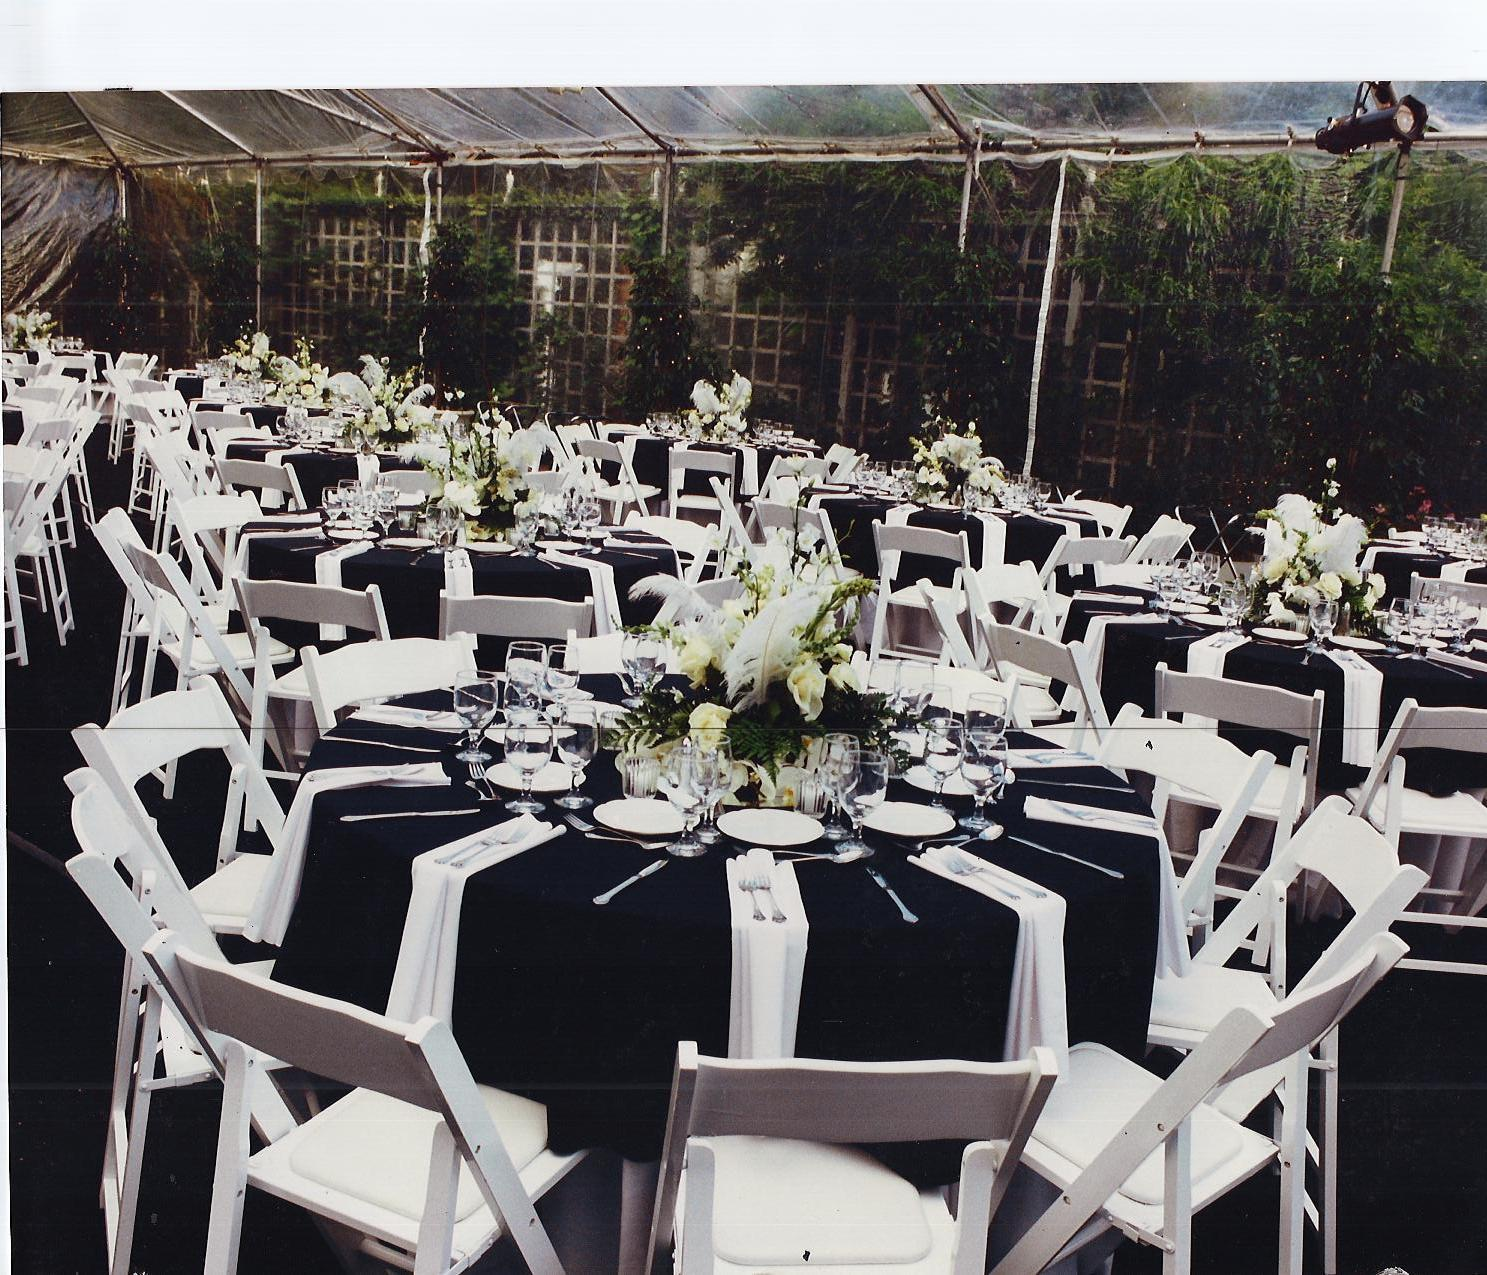 Wedding Reception Chair Rental: Tented Wedding Reception Clear Top Tent Amp White Wood